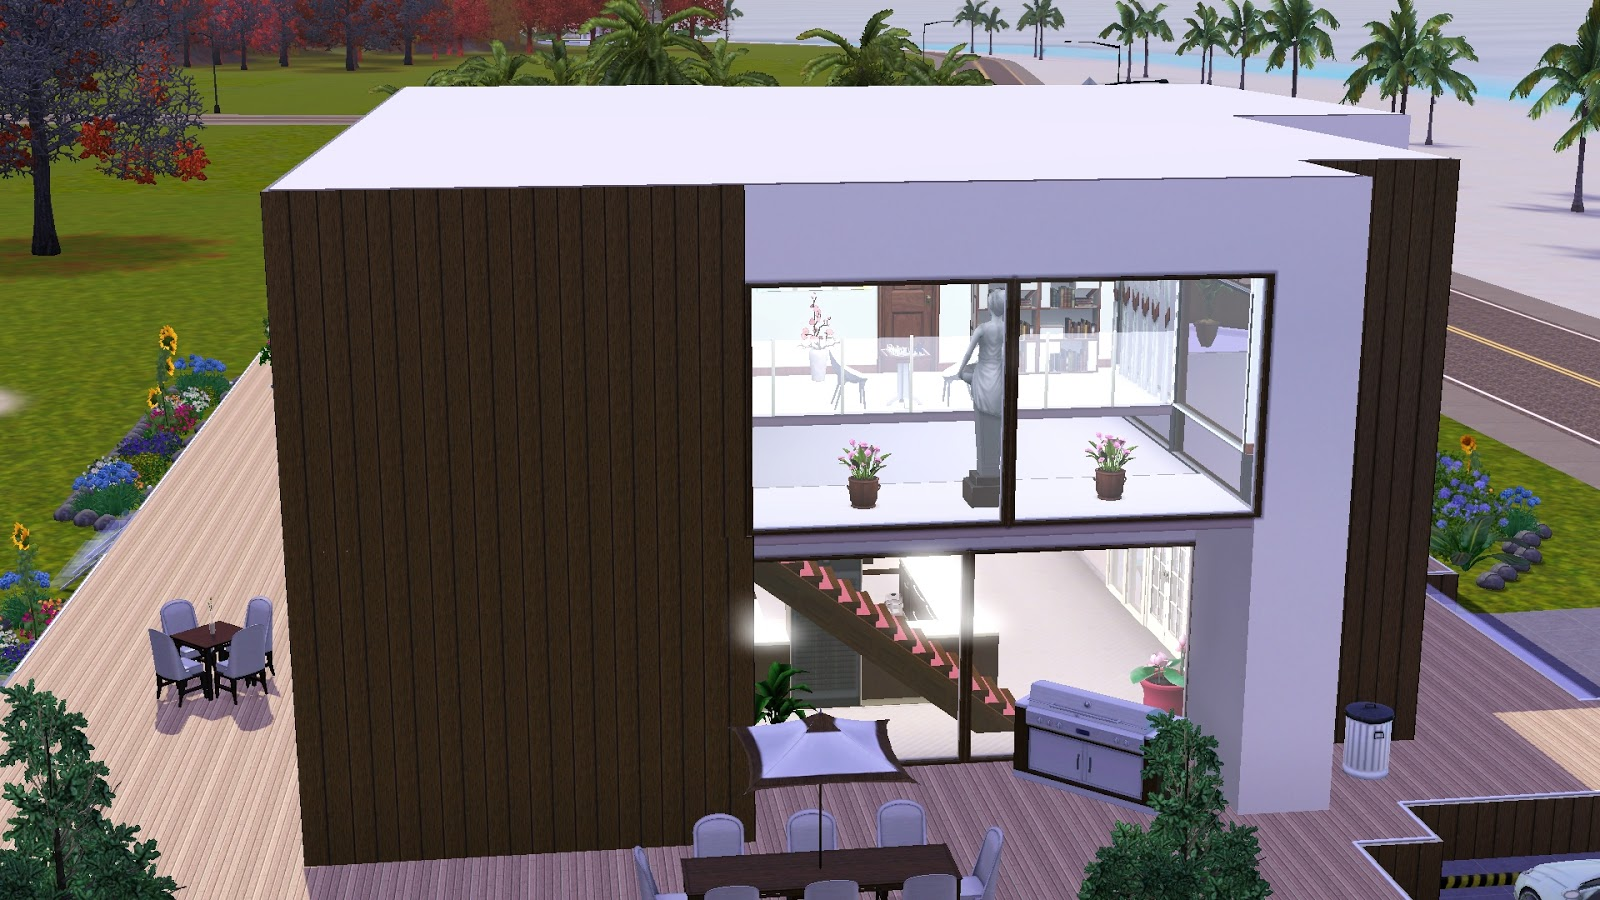 Sims 3 Schlafzimmer Modern 19 Sims 3 Blog: Spezial Download Pack 2